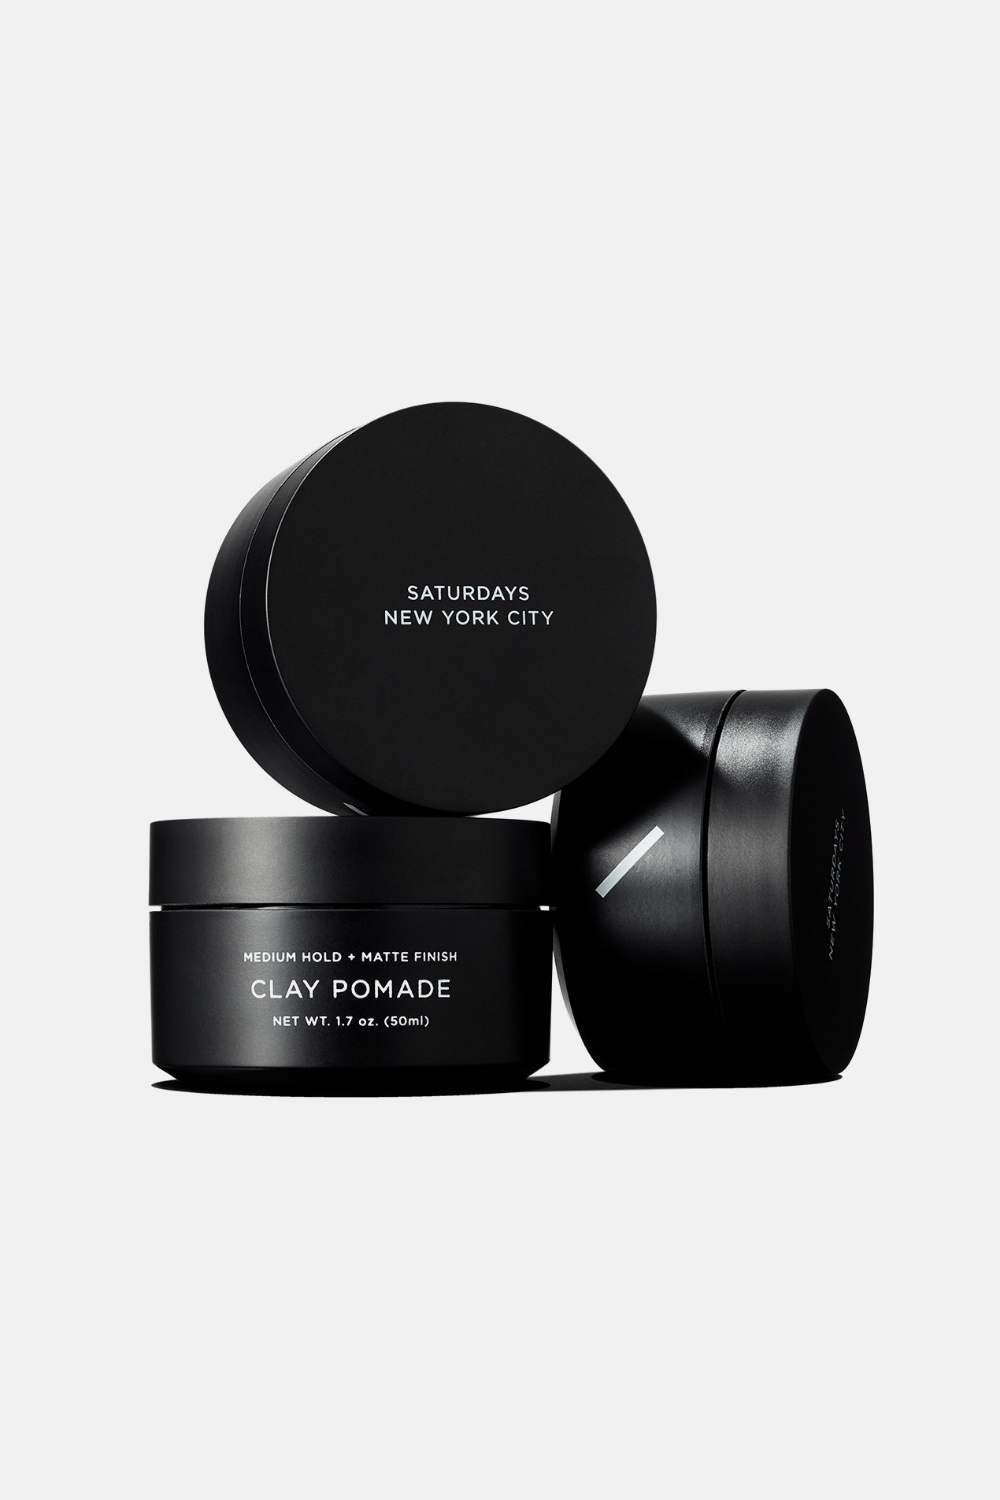 Clay Pomade Pomade Packaging Black Packaging Beauty Packaging